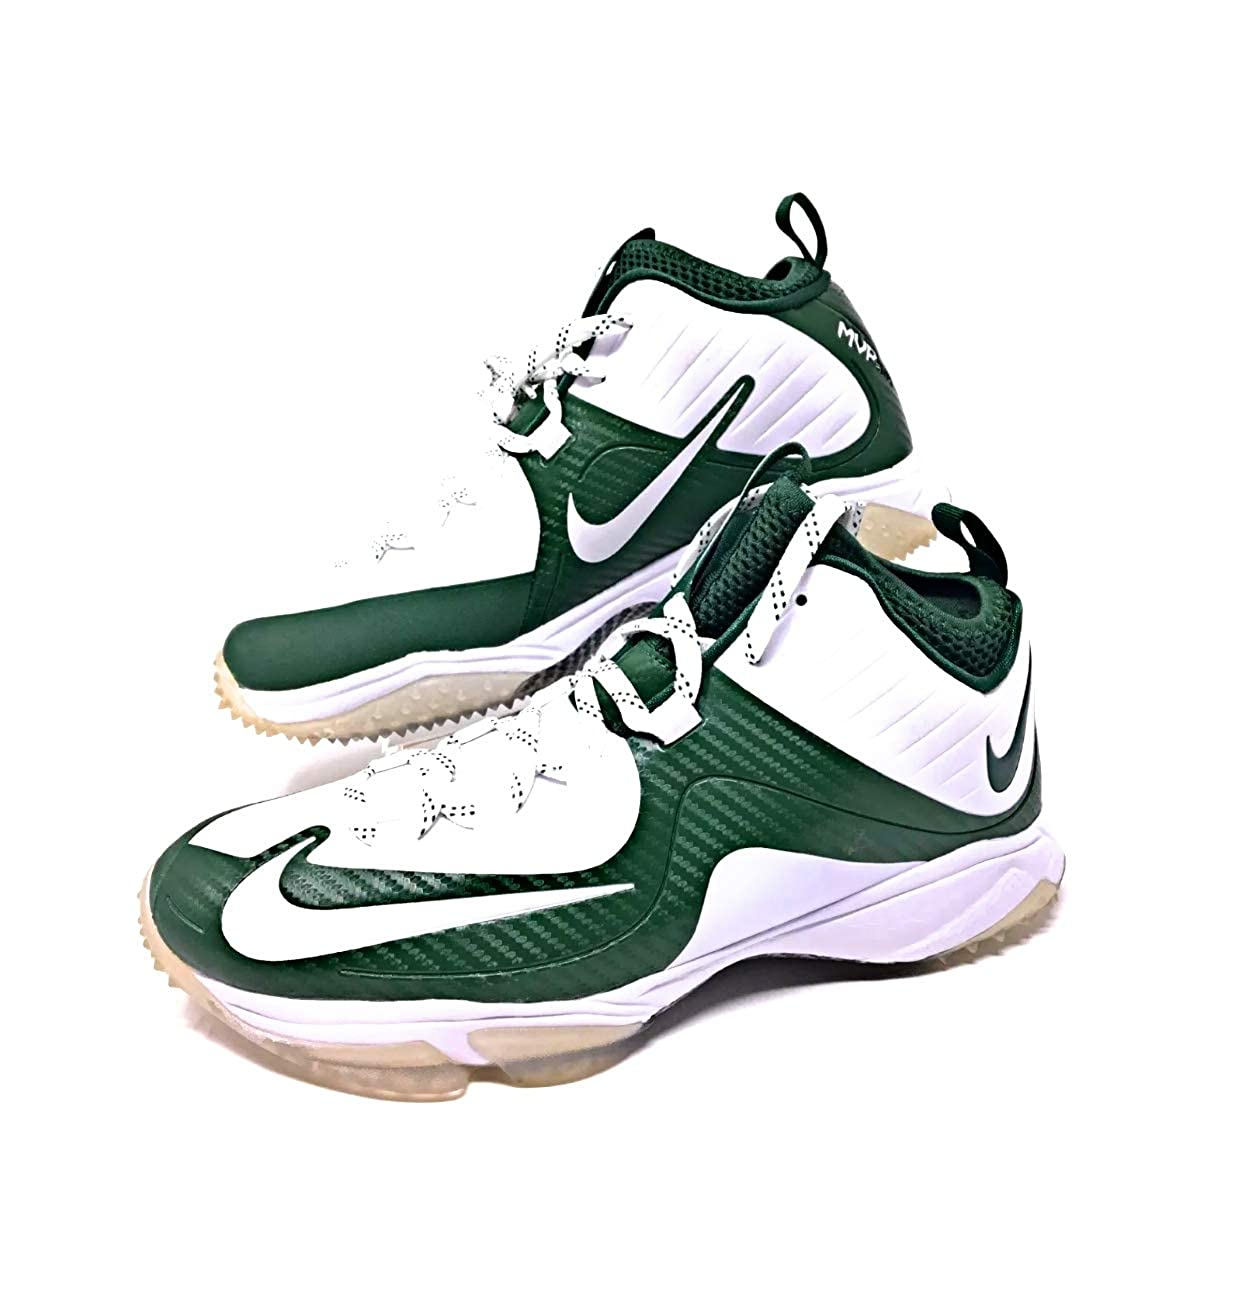 3b904e361400 Amazon.com  Nike Air Max MVP Elite 2 Nubby turf trainers baseball  739394-115 white Deep forest green Size 13  Clothing